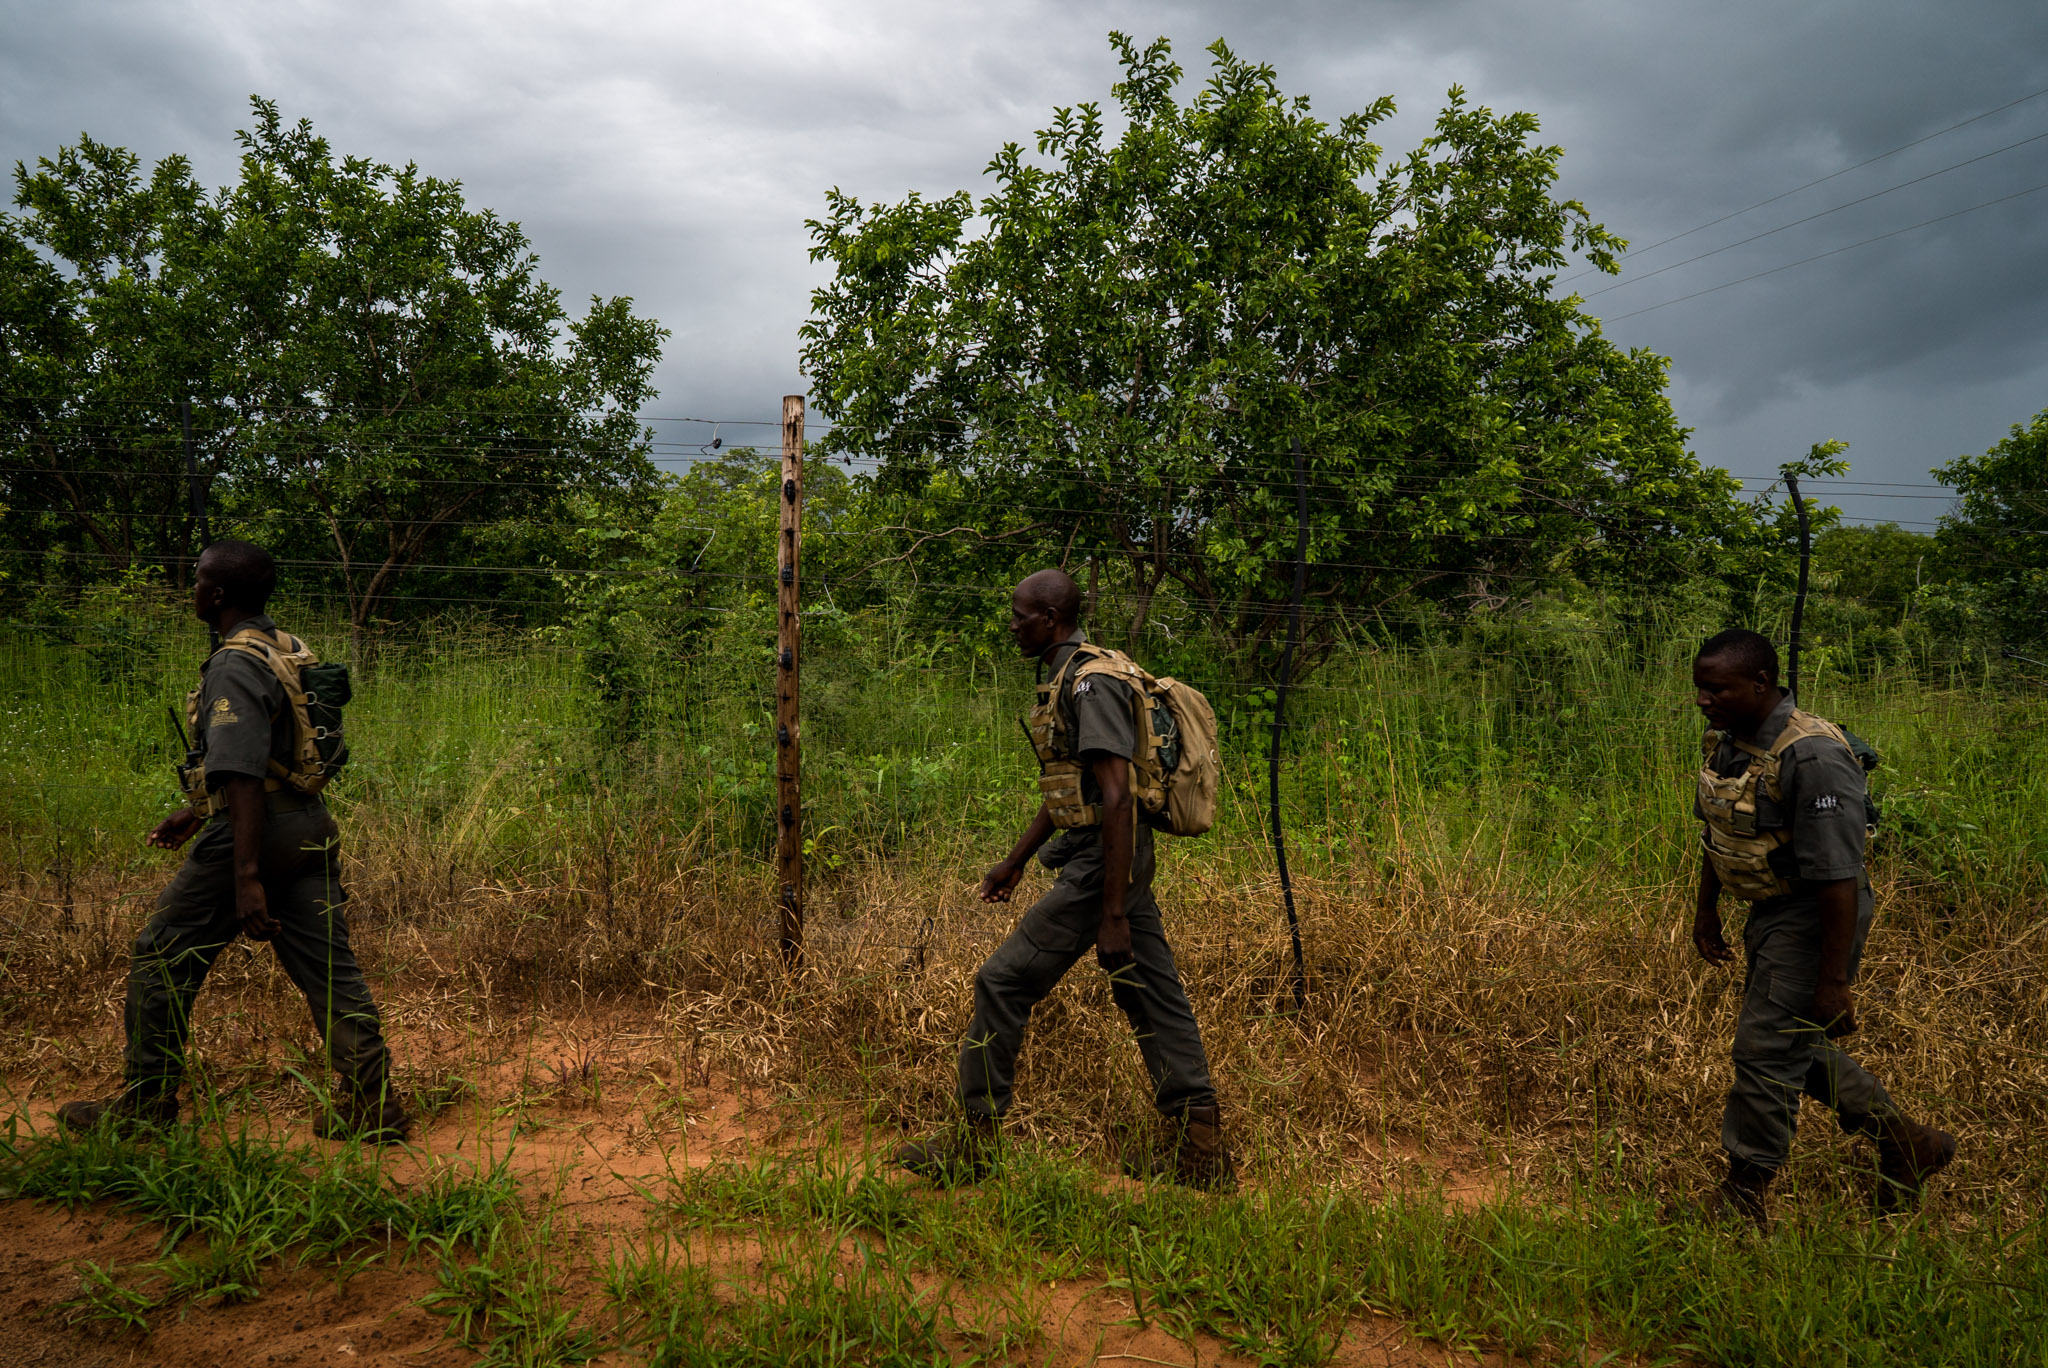 IAPF rangers on fence patrol—Photograph by Michael Hathorn, Ginkgo Agency